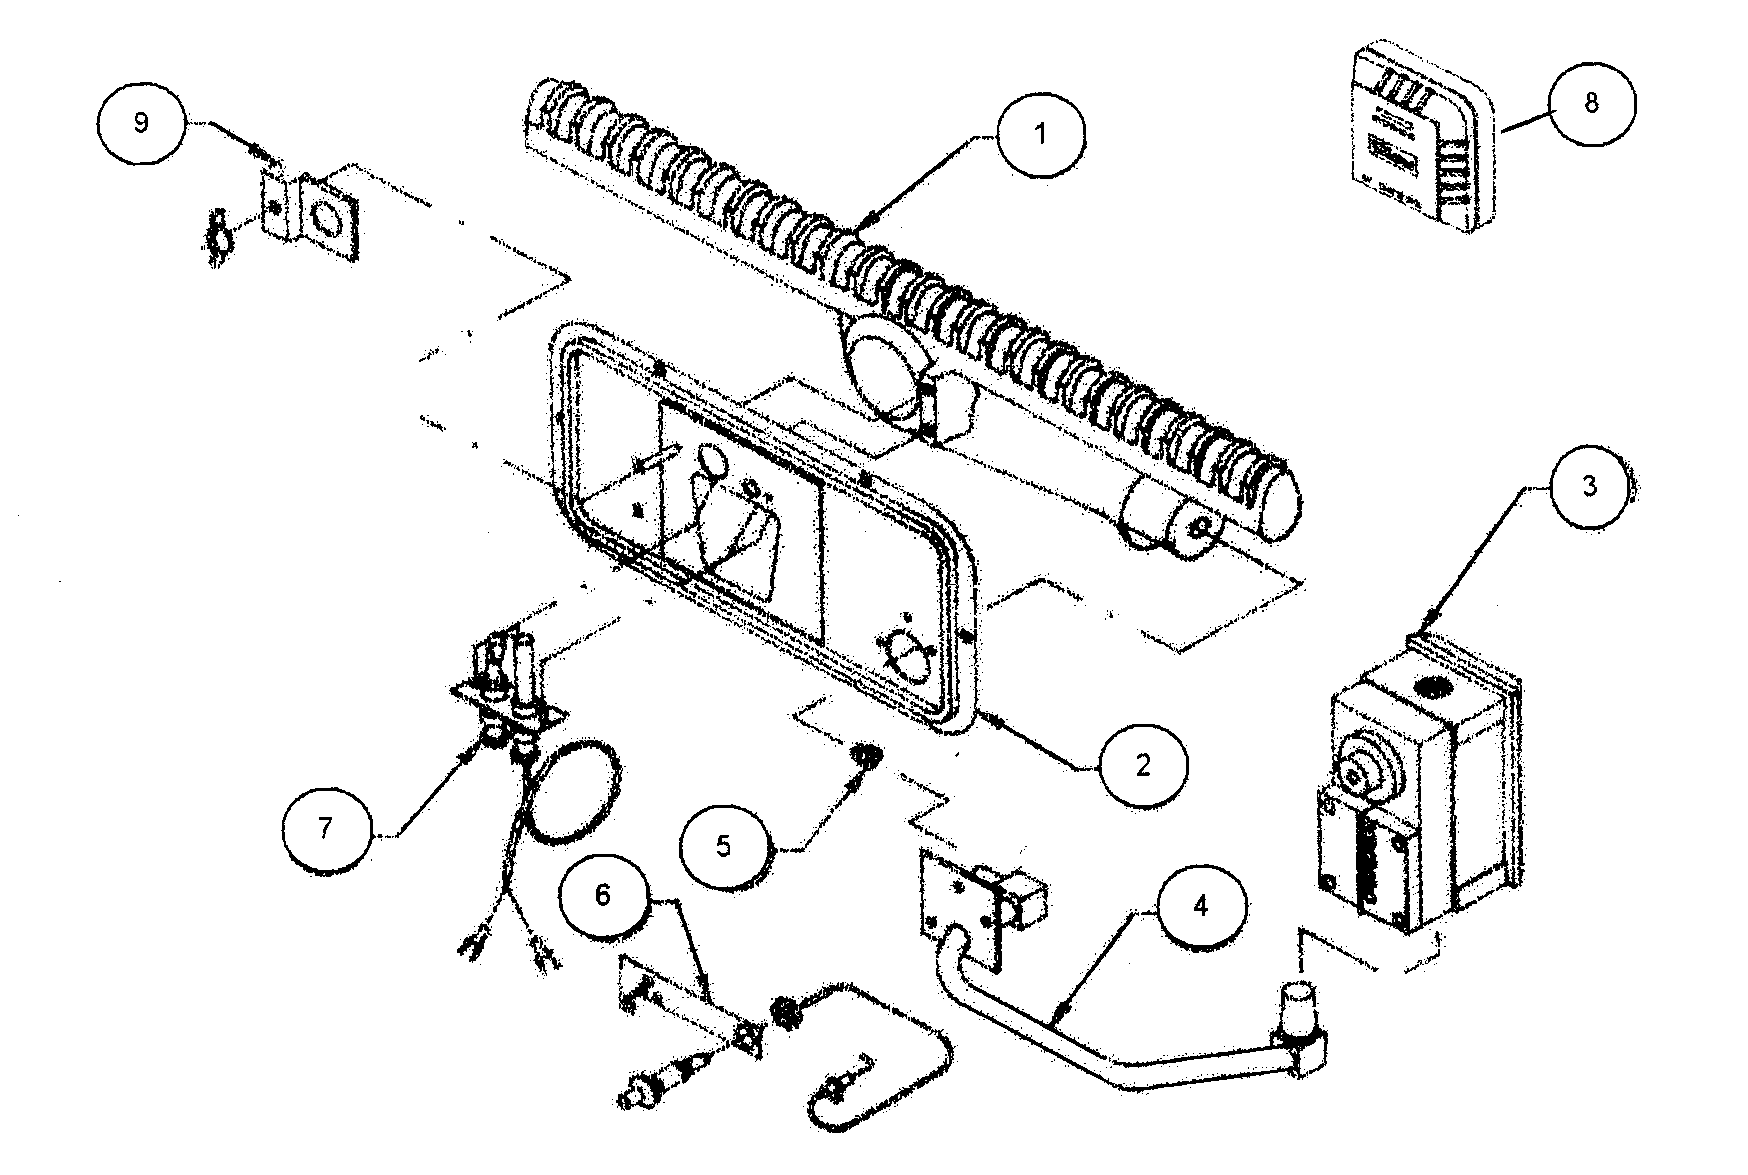 29 Williams Wall Furnace Parts Diagram